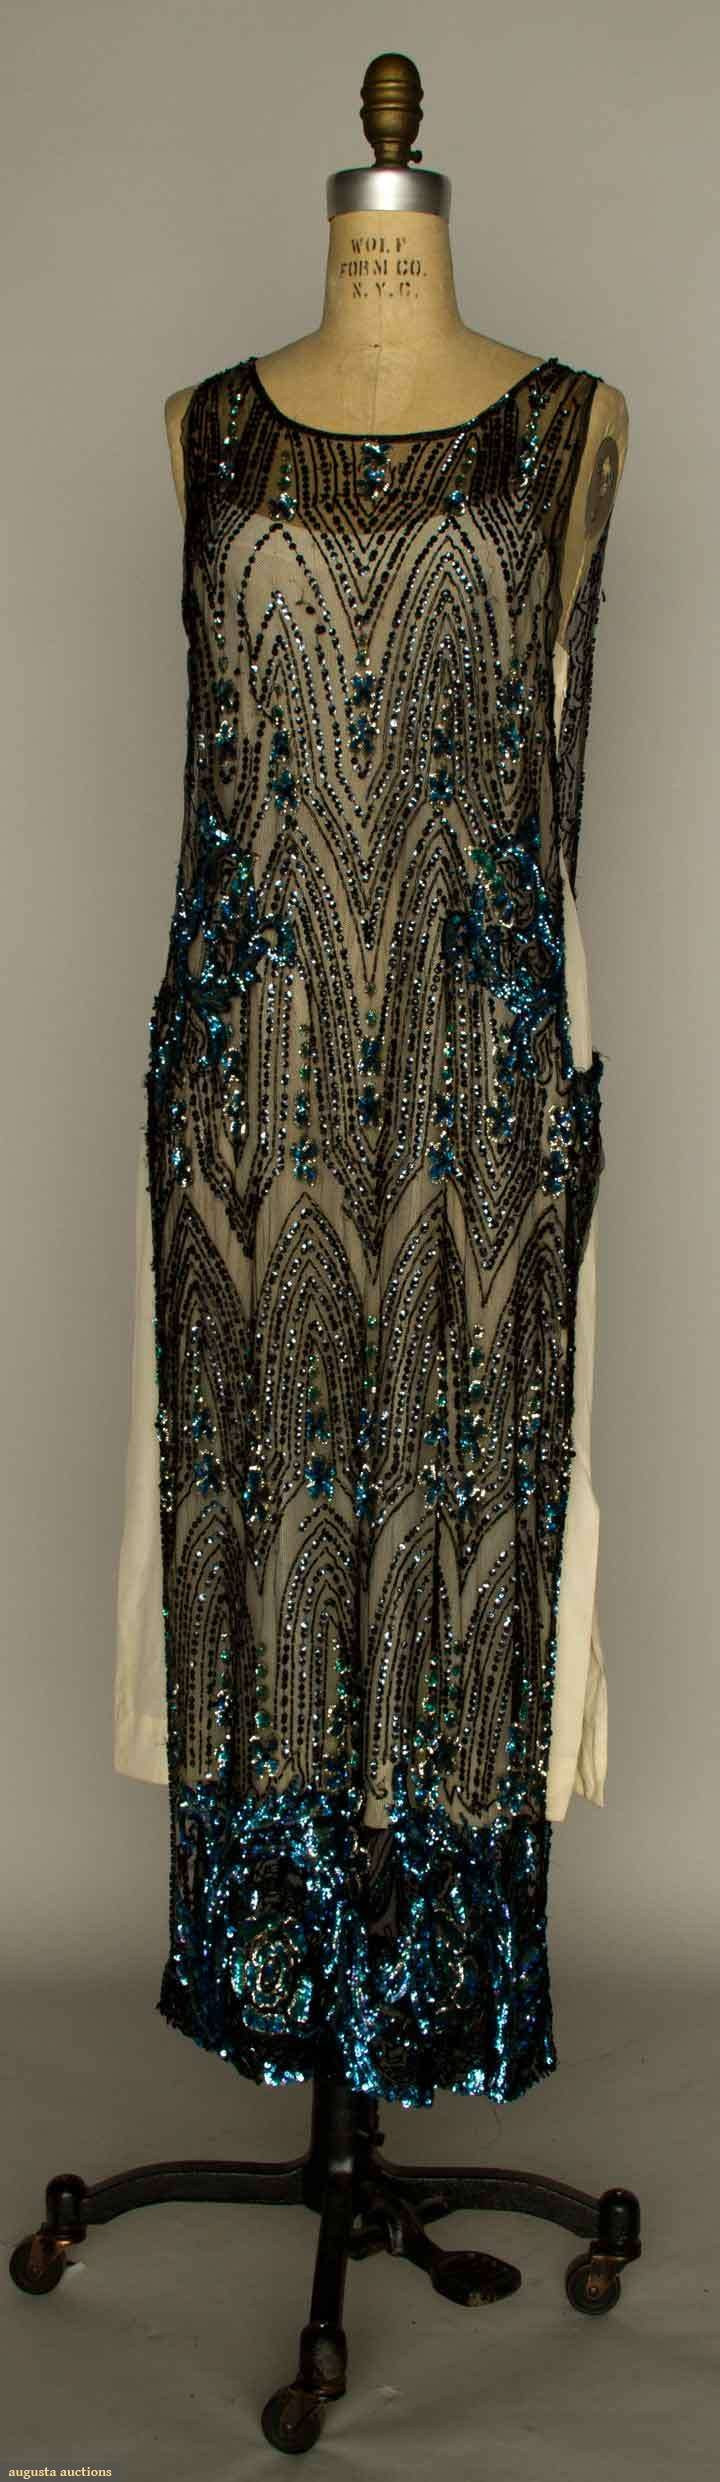 SEQUIN TABARD DRESS, EARLY 1920s. Black net embroidered with Paillettes Gélatine Irisée and black bugle beads. jαɢlαdy